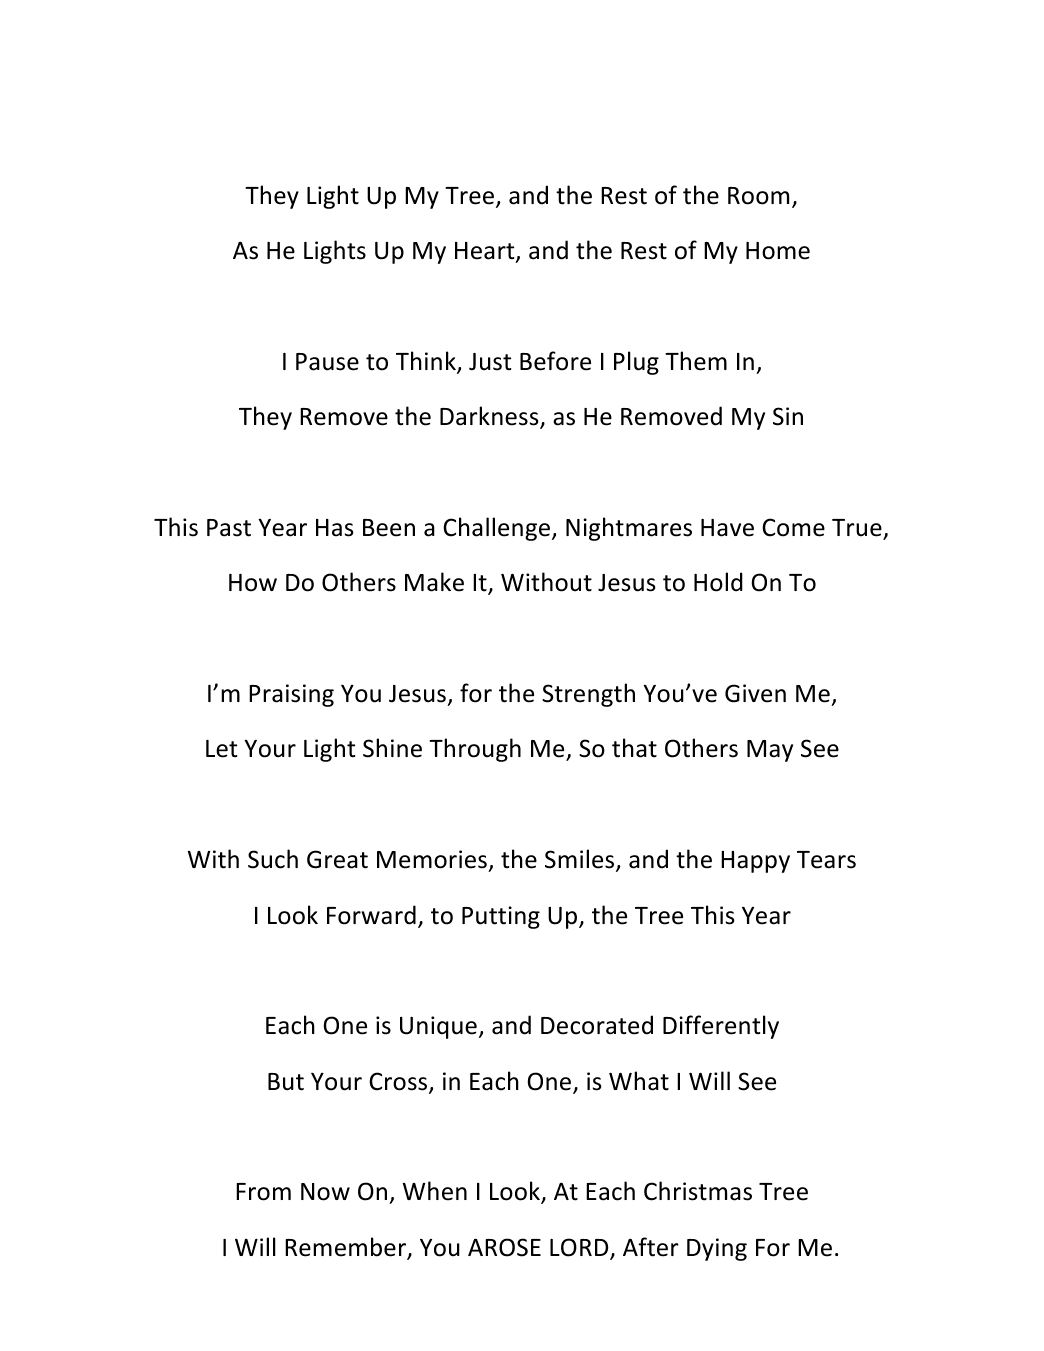 The Christmas Tree Poem By K Ross My Good Friend In